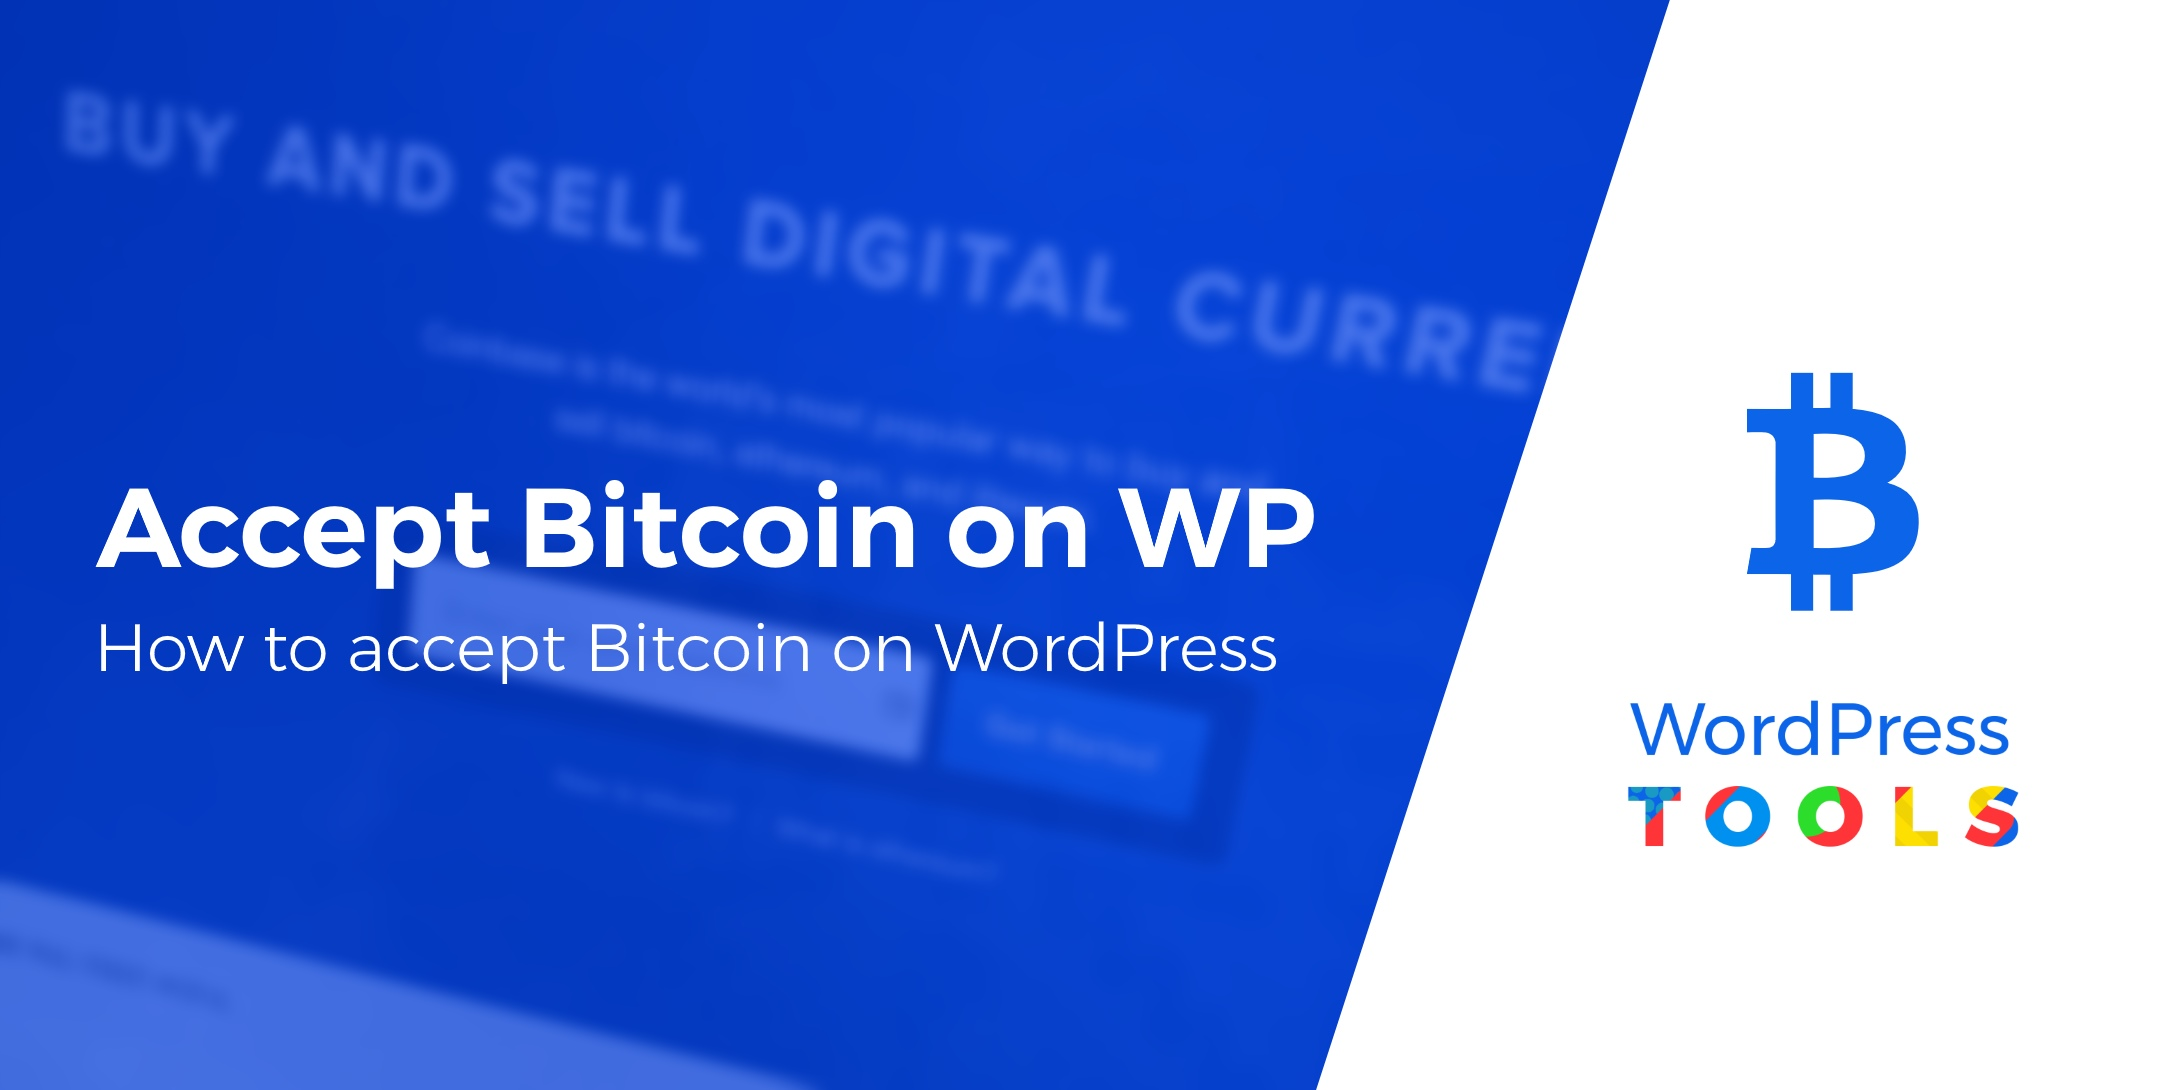 How to accept Bitcoin on WordPress